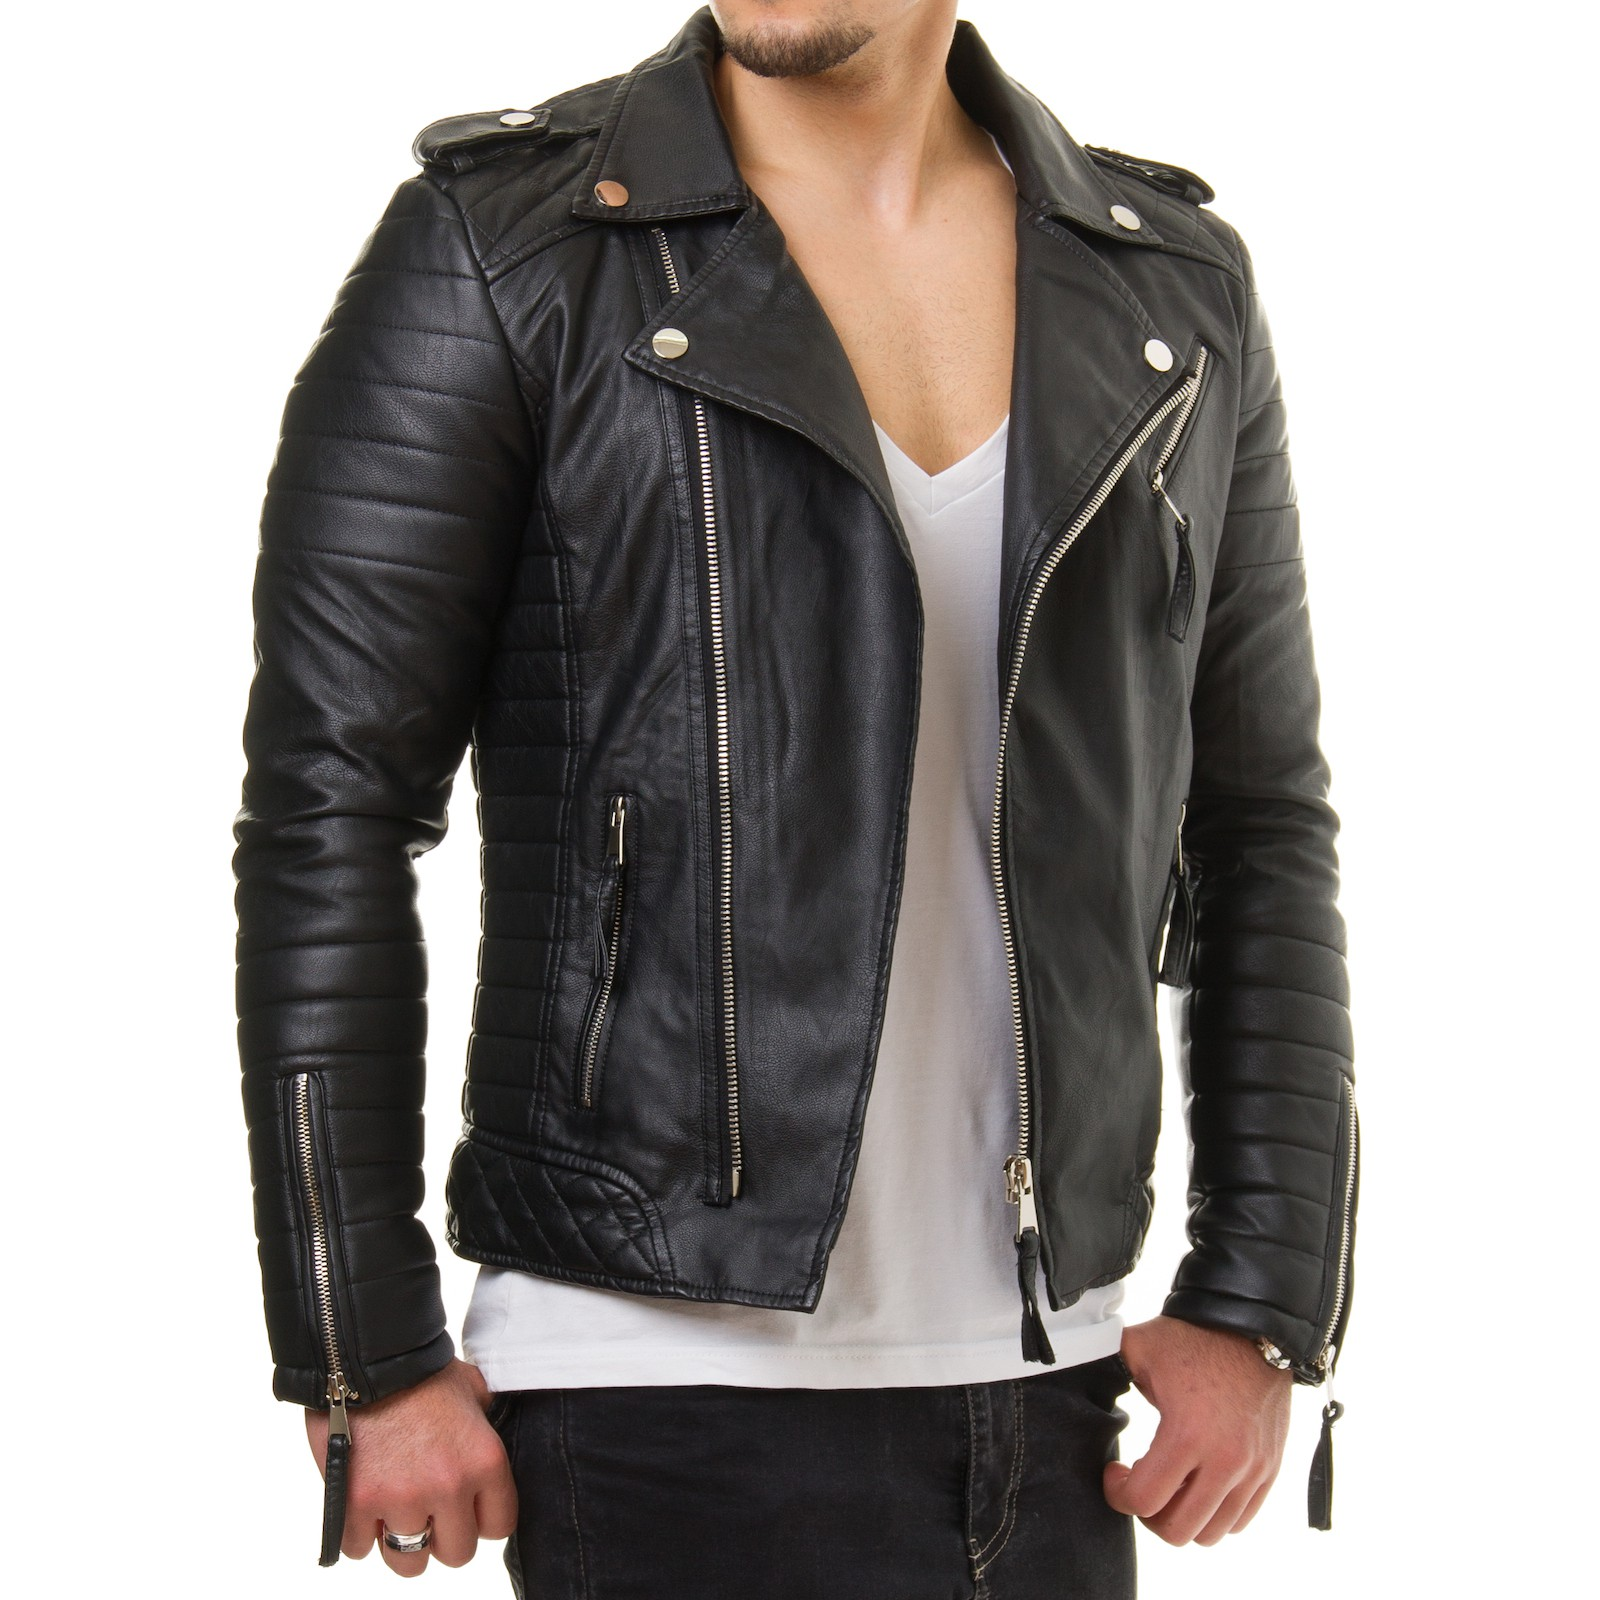 biker lederjacke herren esprit herren lederjacke jacke im biker stil modische reslad herren. Black Bedroom Furniture Sets. Home Design Ideas